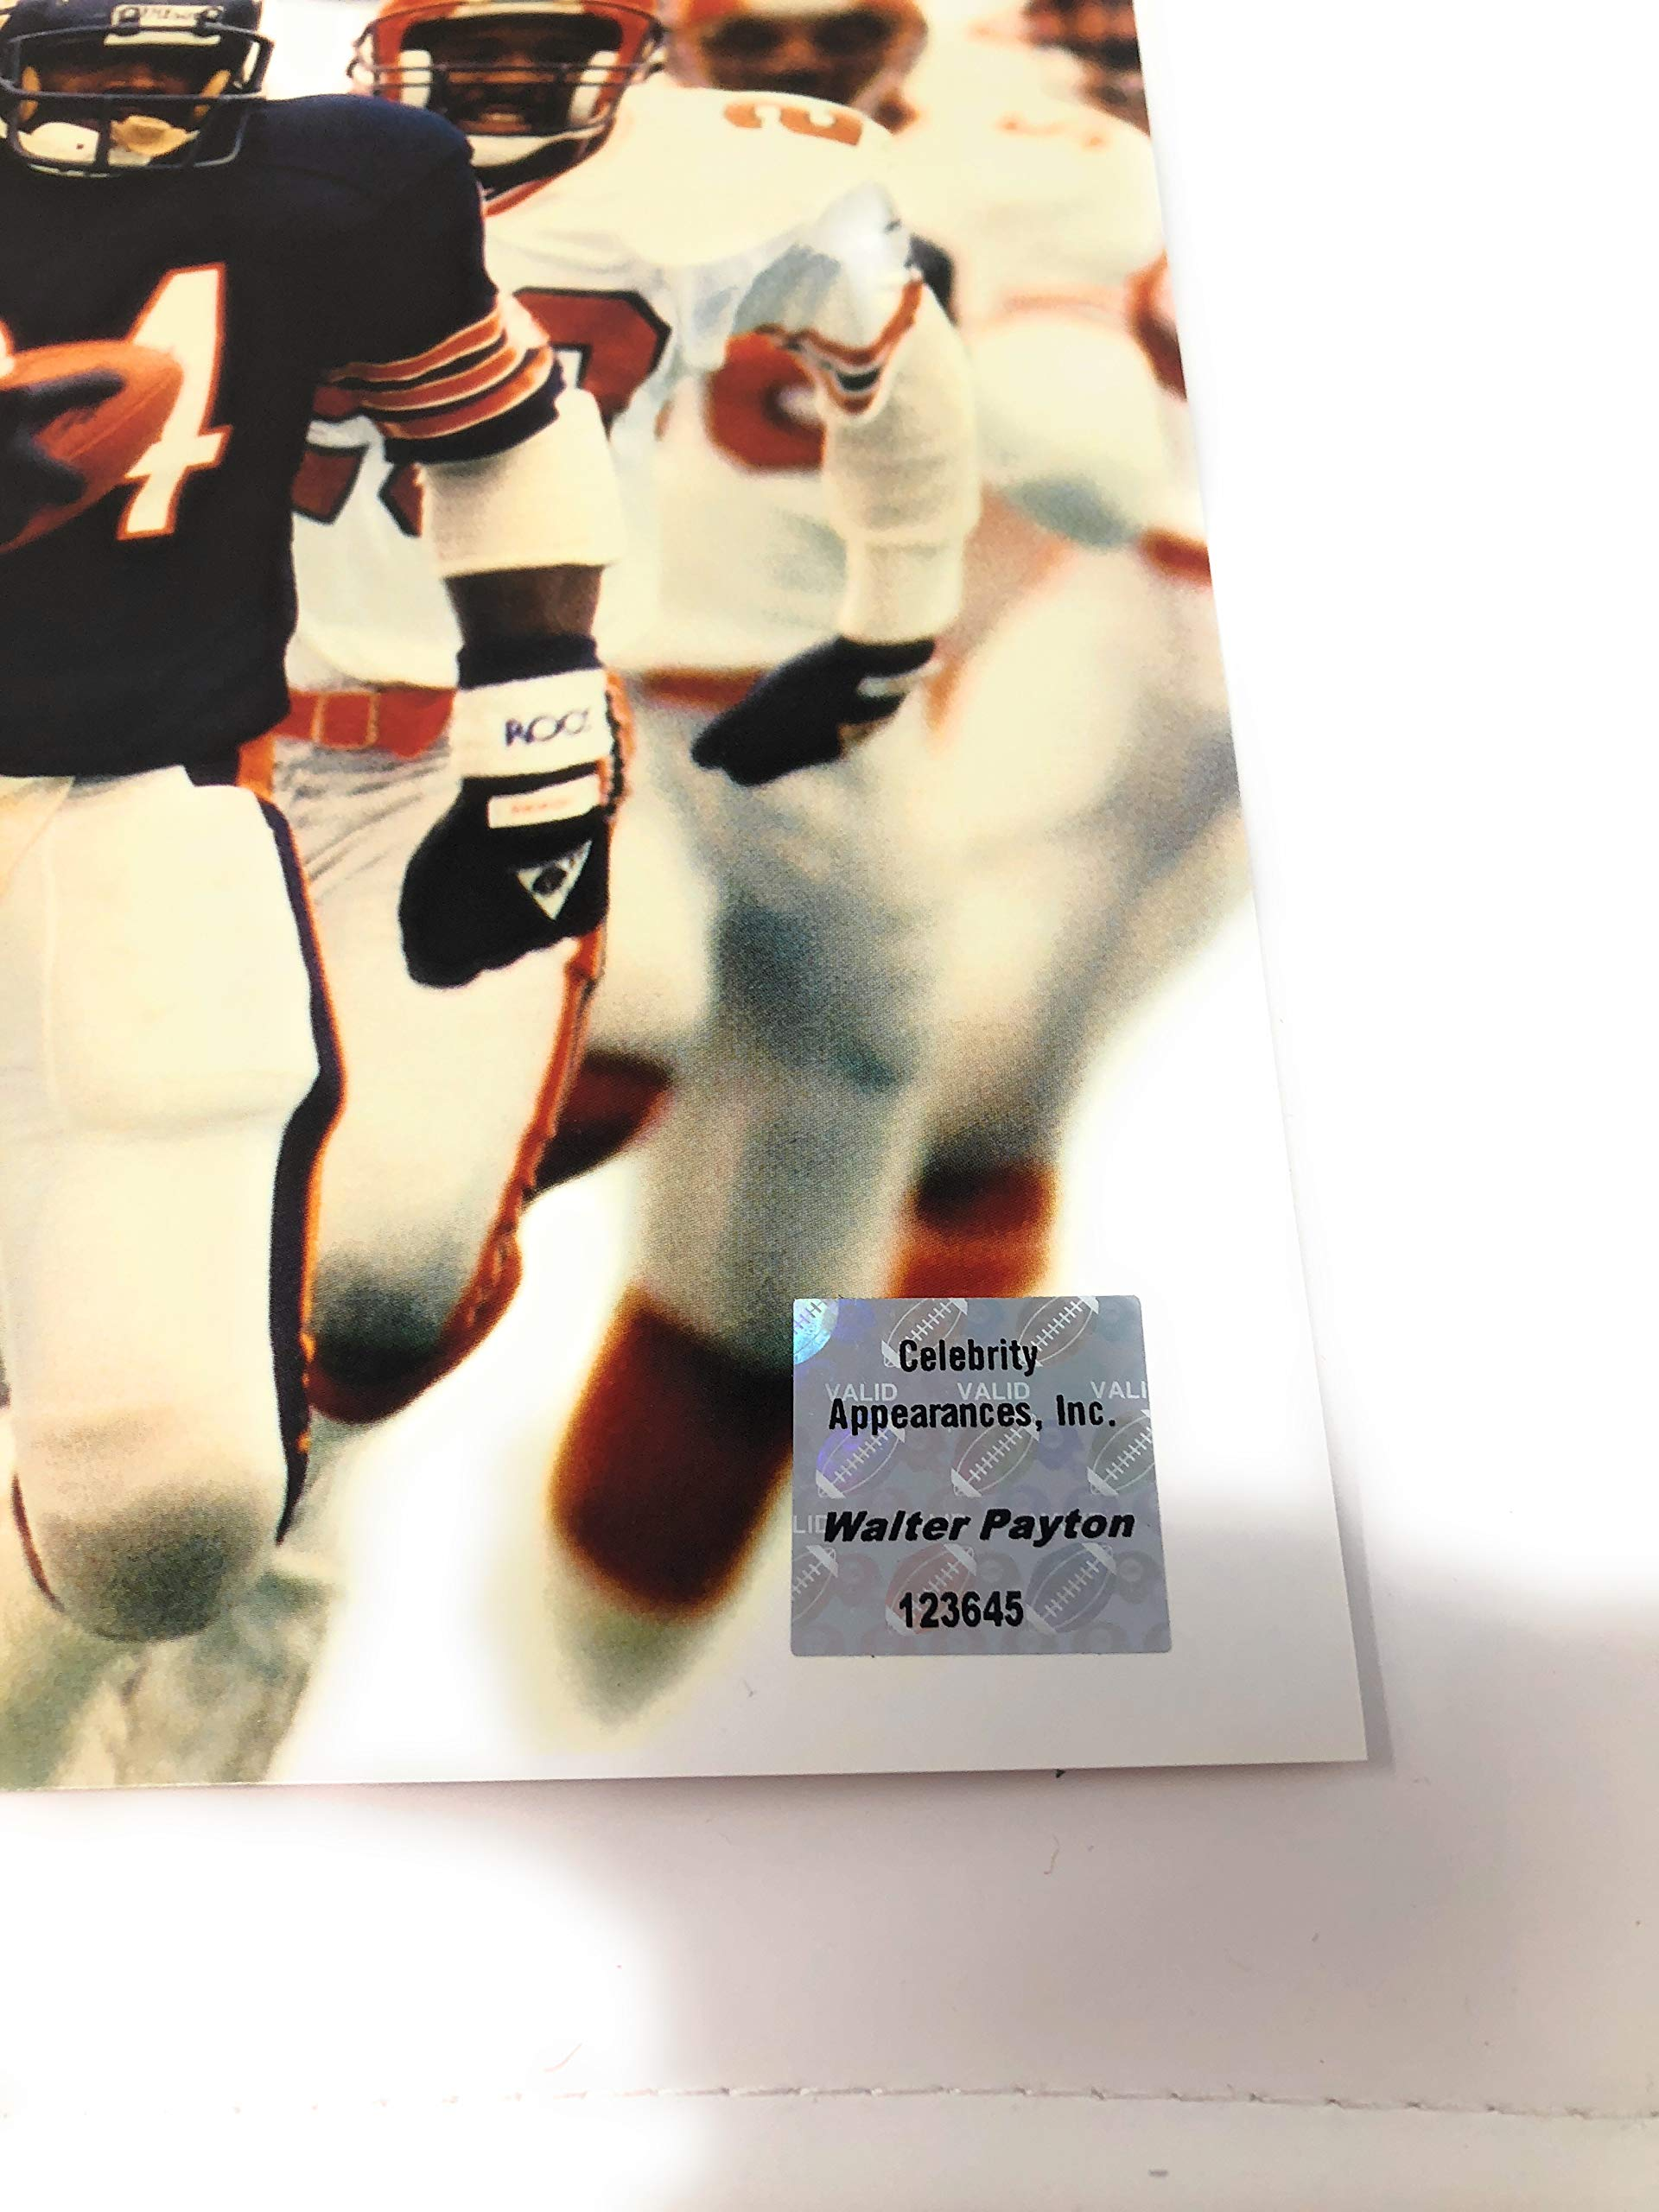 Walter Payton Chicago Bears Signed Autograph SI 16x20 Photo Photograph W Payton Foundation Certified